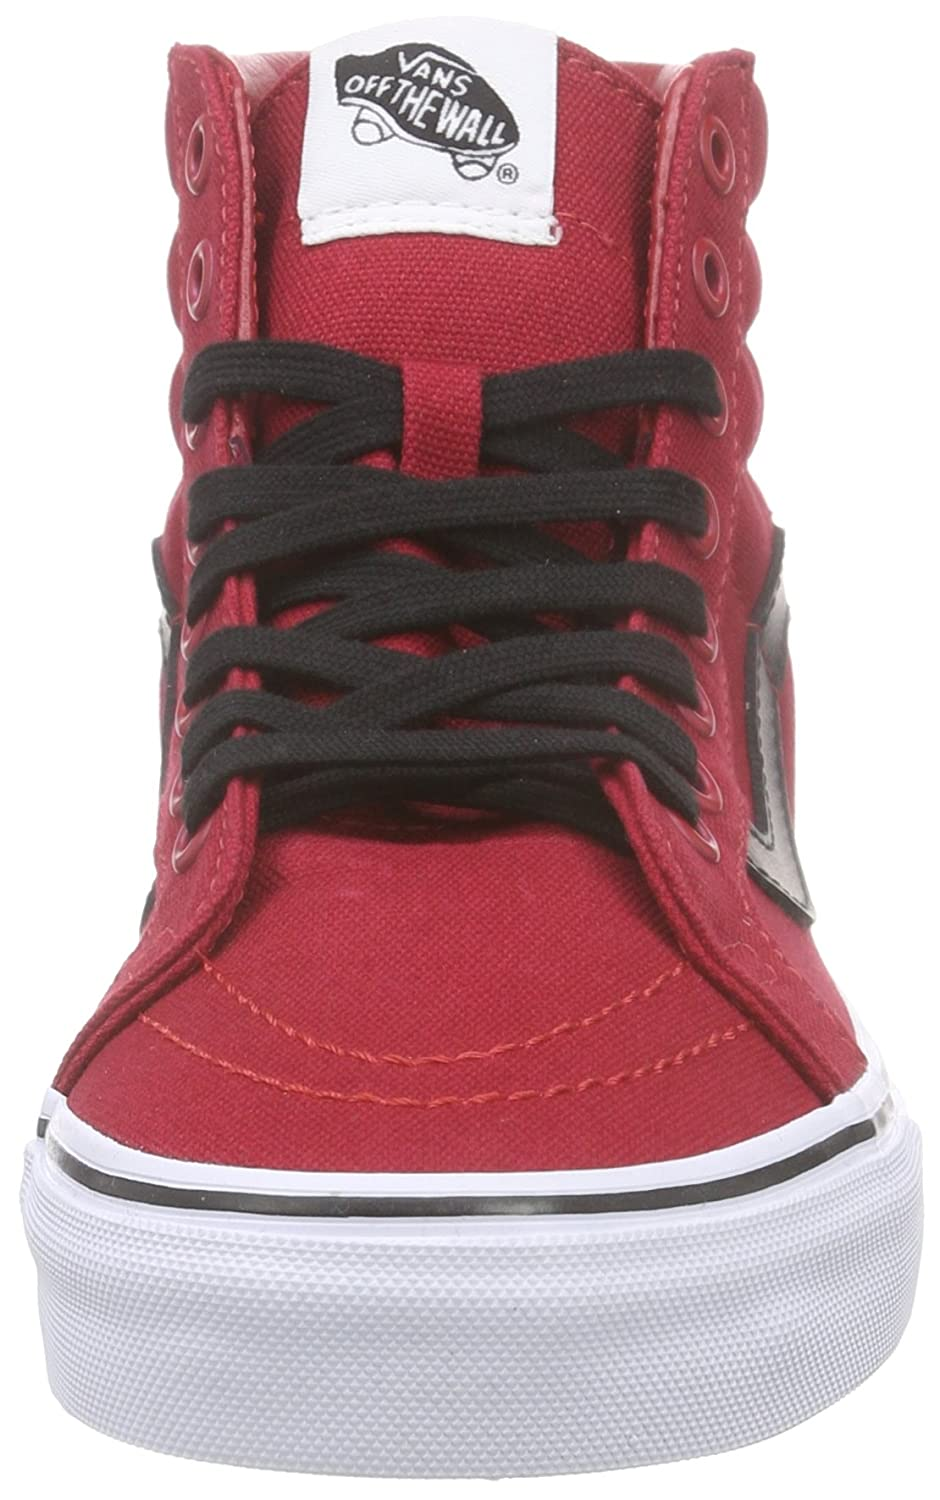 Vans Unisex Sk8-Hi Slim Women's Skate Shoe B011JZGQ0W 5.5 D(M) US|Chili Pepper Red Black